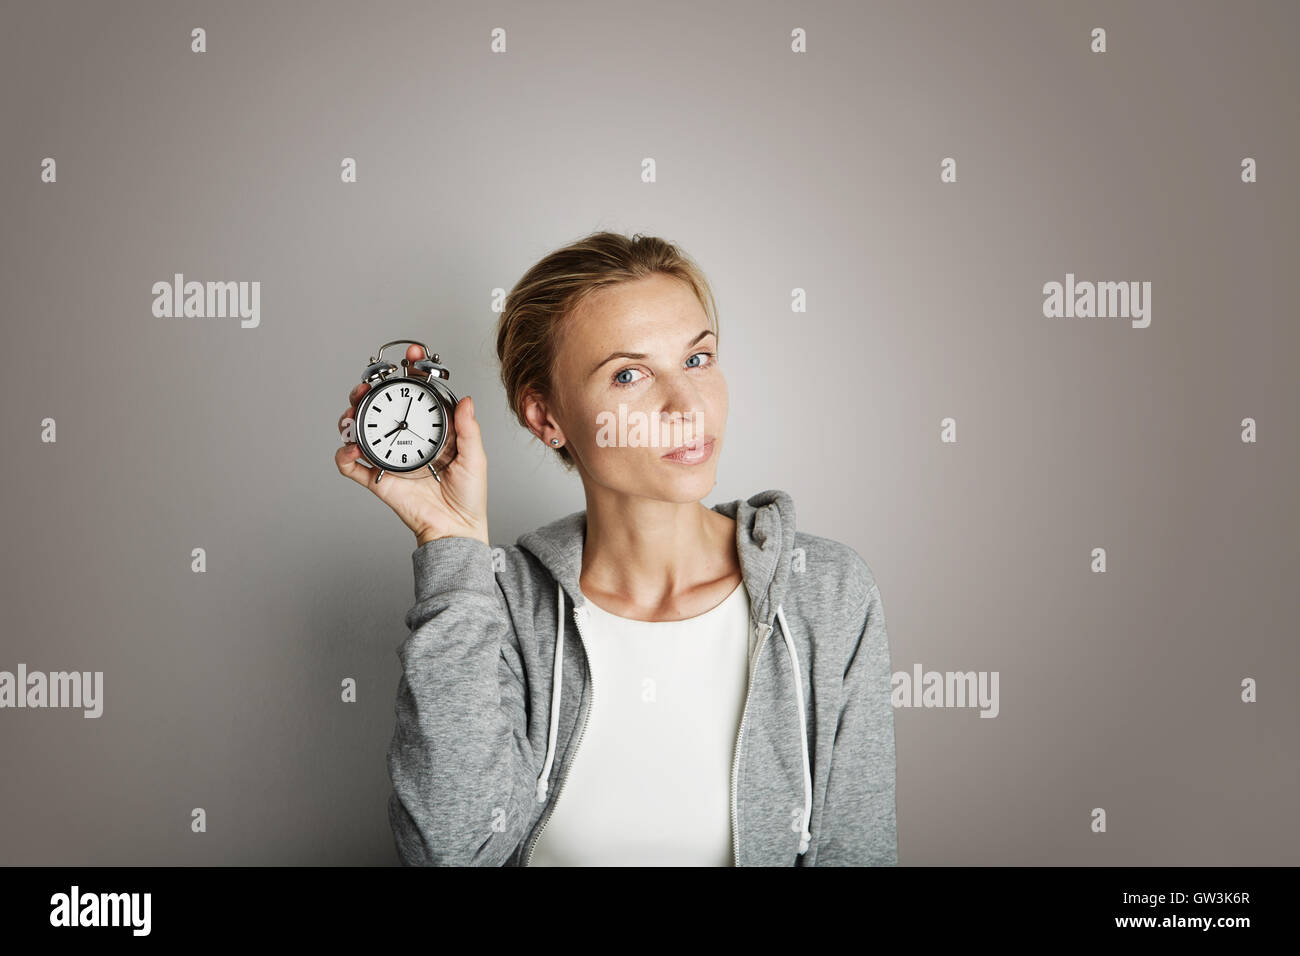 Portrait Handsome Young Woman Posing Blank Gray Background.Pretty Girl Smiling Holding Vintage Alarm Clock Hand - Stock Image